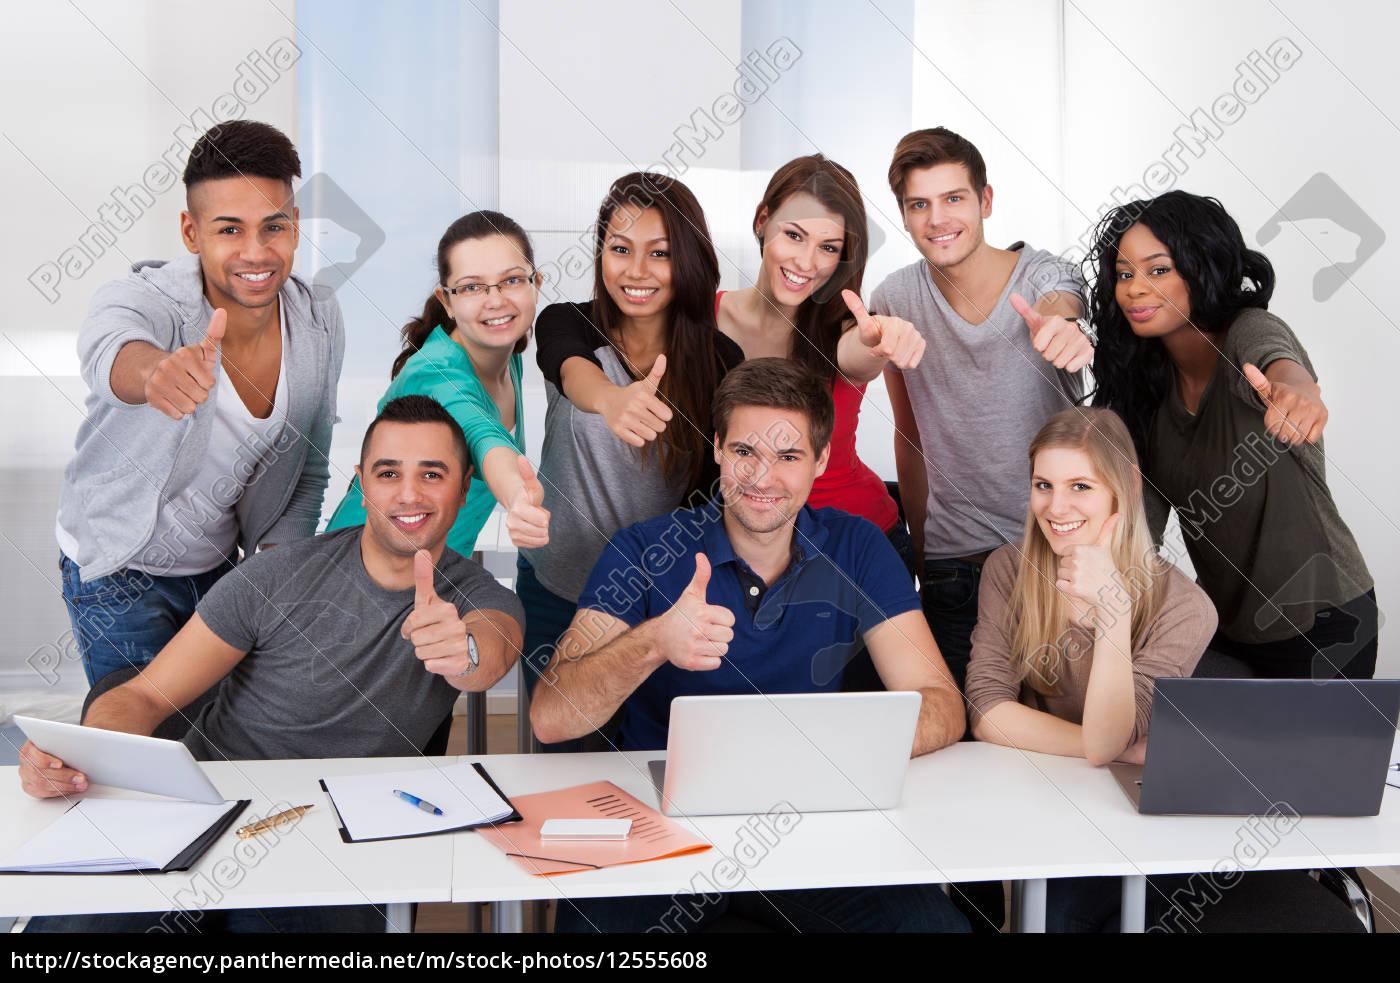 college, students, gesturing, thumbs, up, sign - 12555608